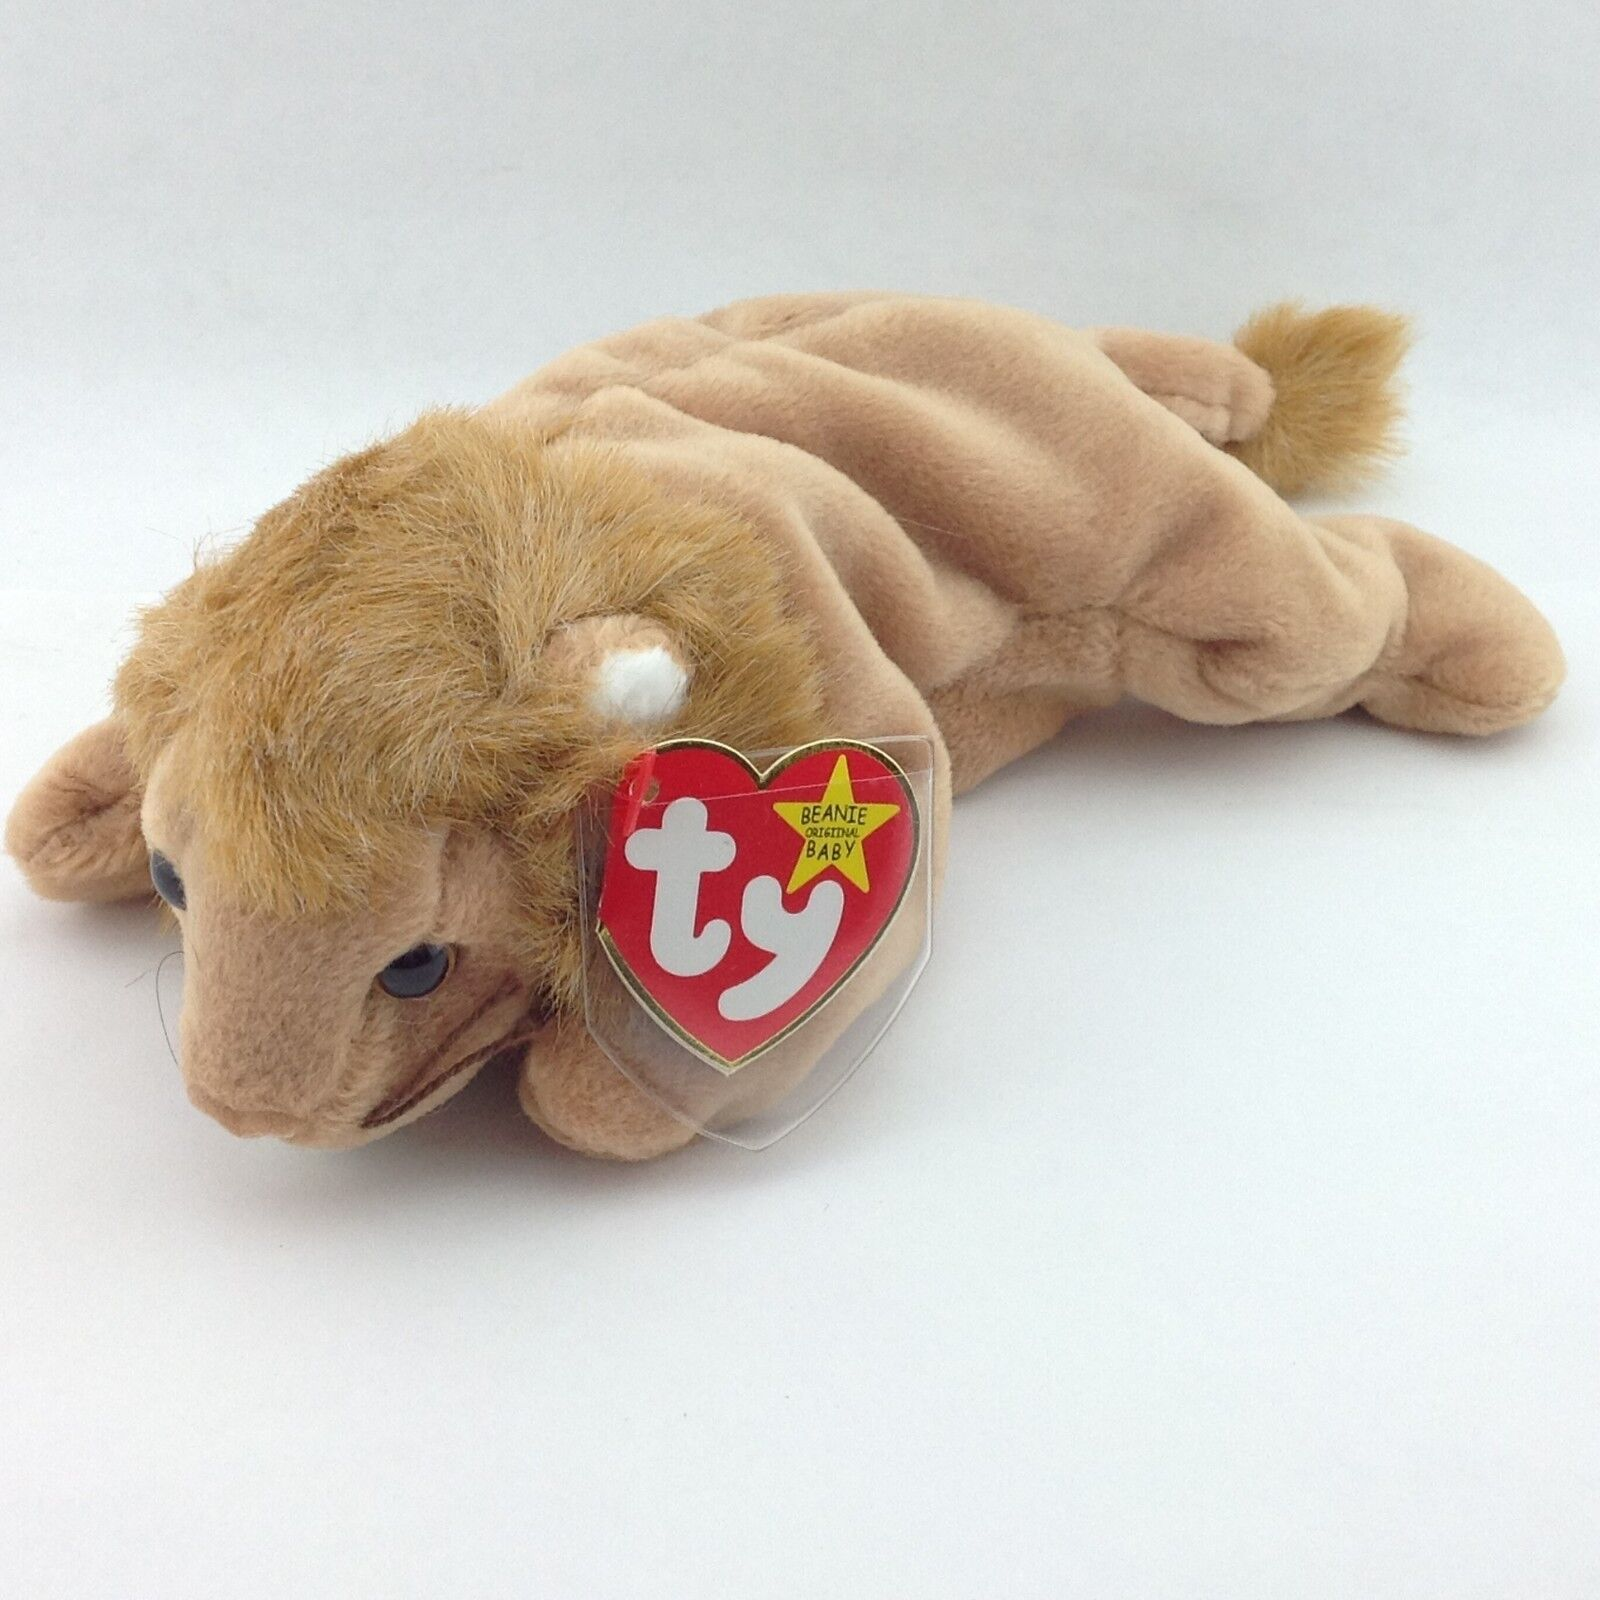 ef0903ecceb TY Beanie Baby 1996 Roary with Errors with Tags Pellets MINT Lion P.E.  oxornm1167-Retired